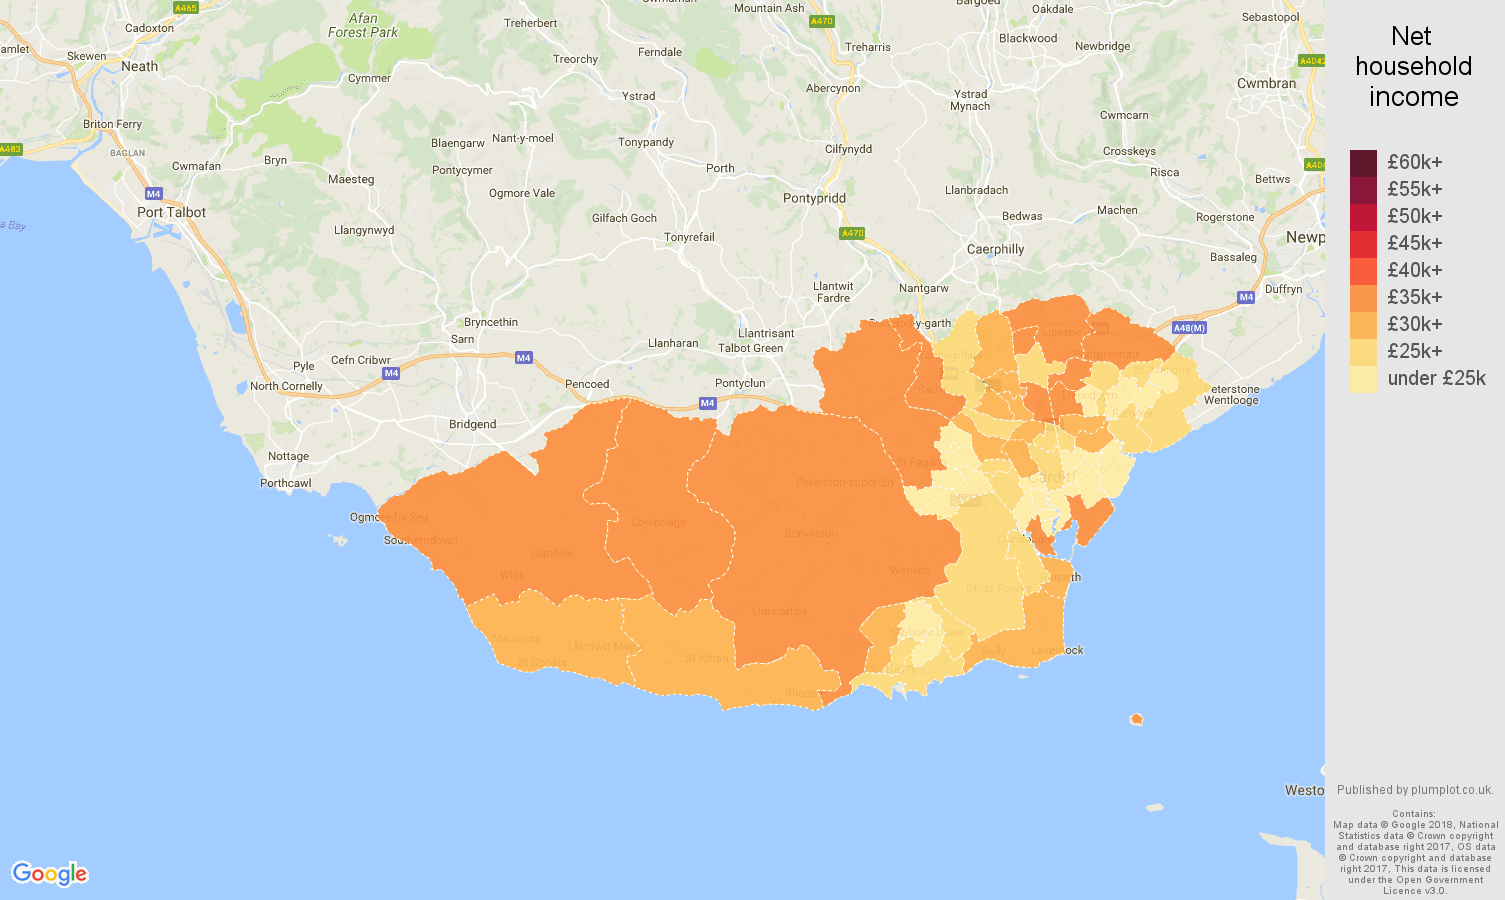 South Glamorgan net household income map